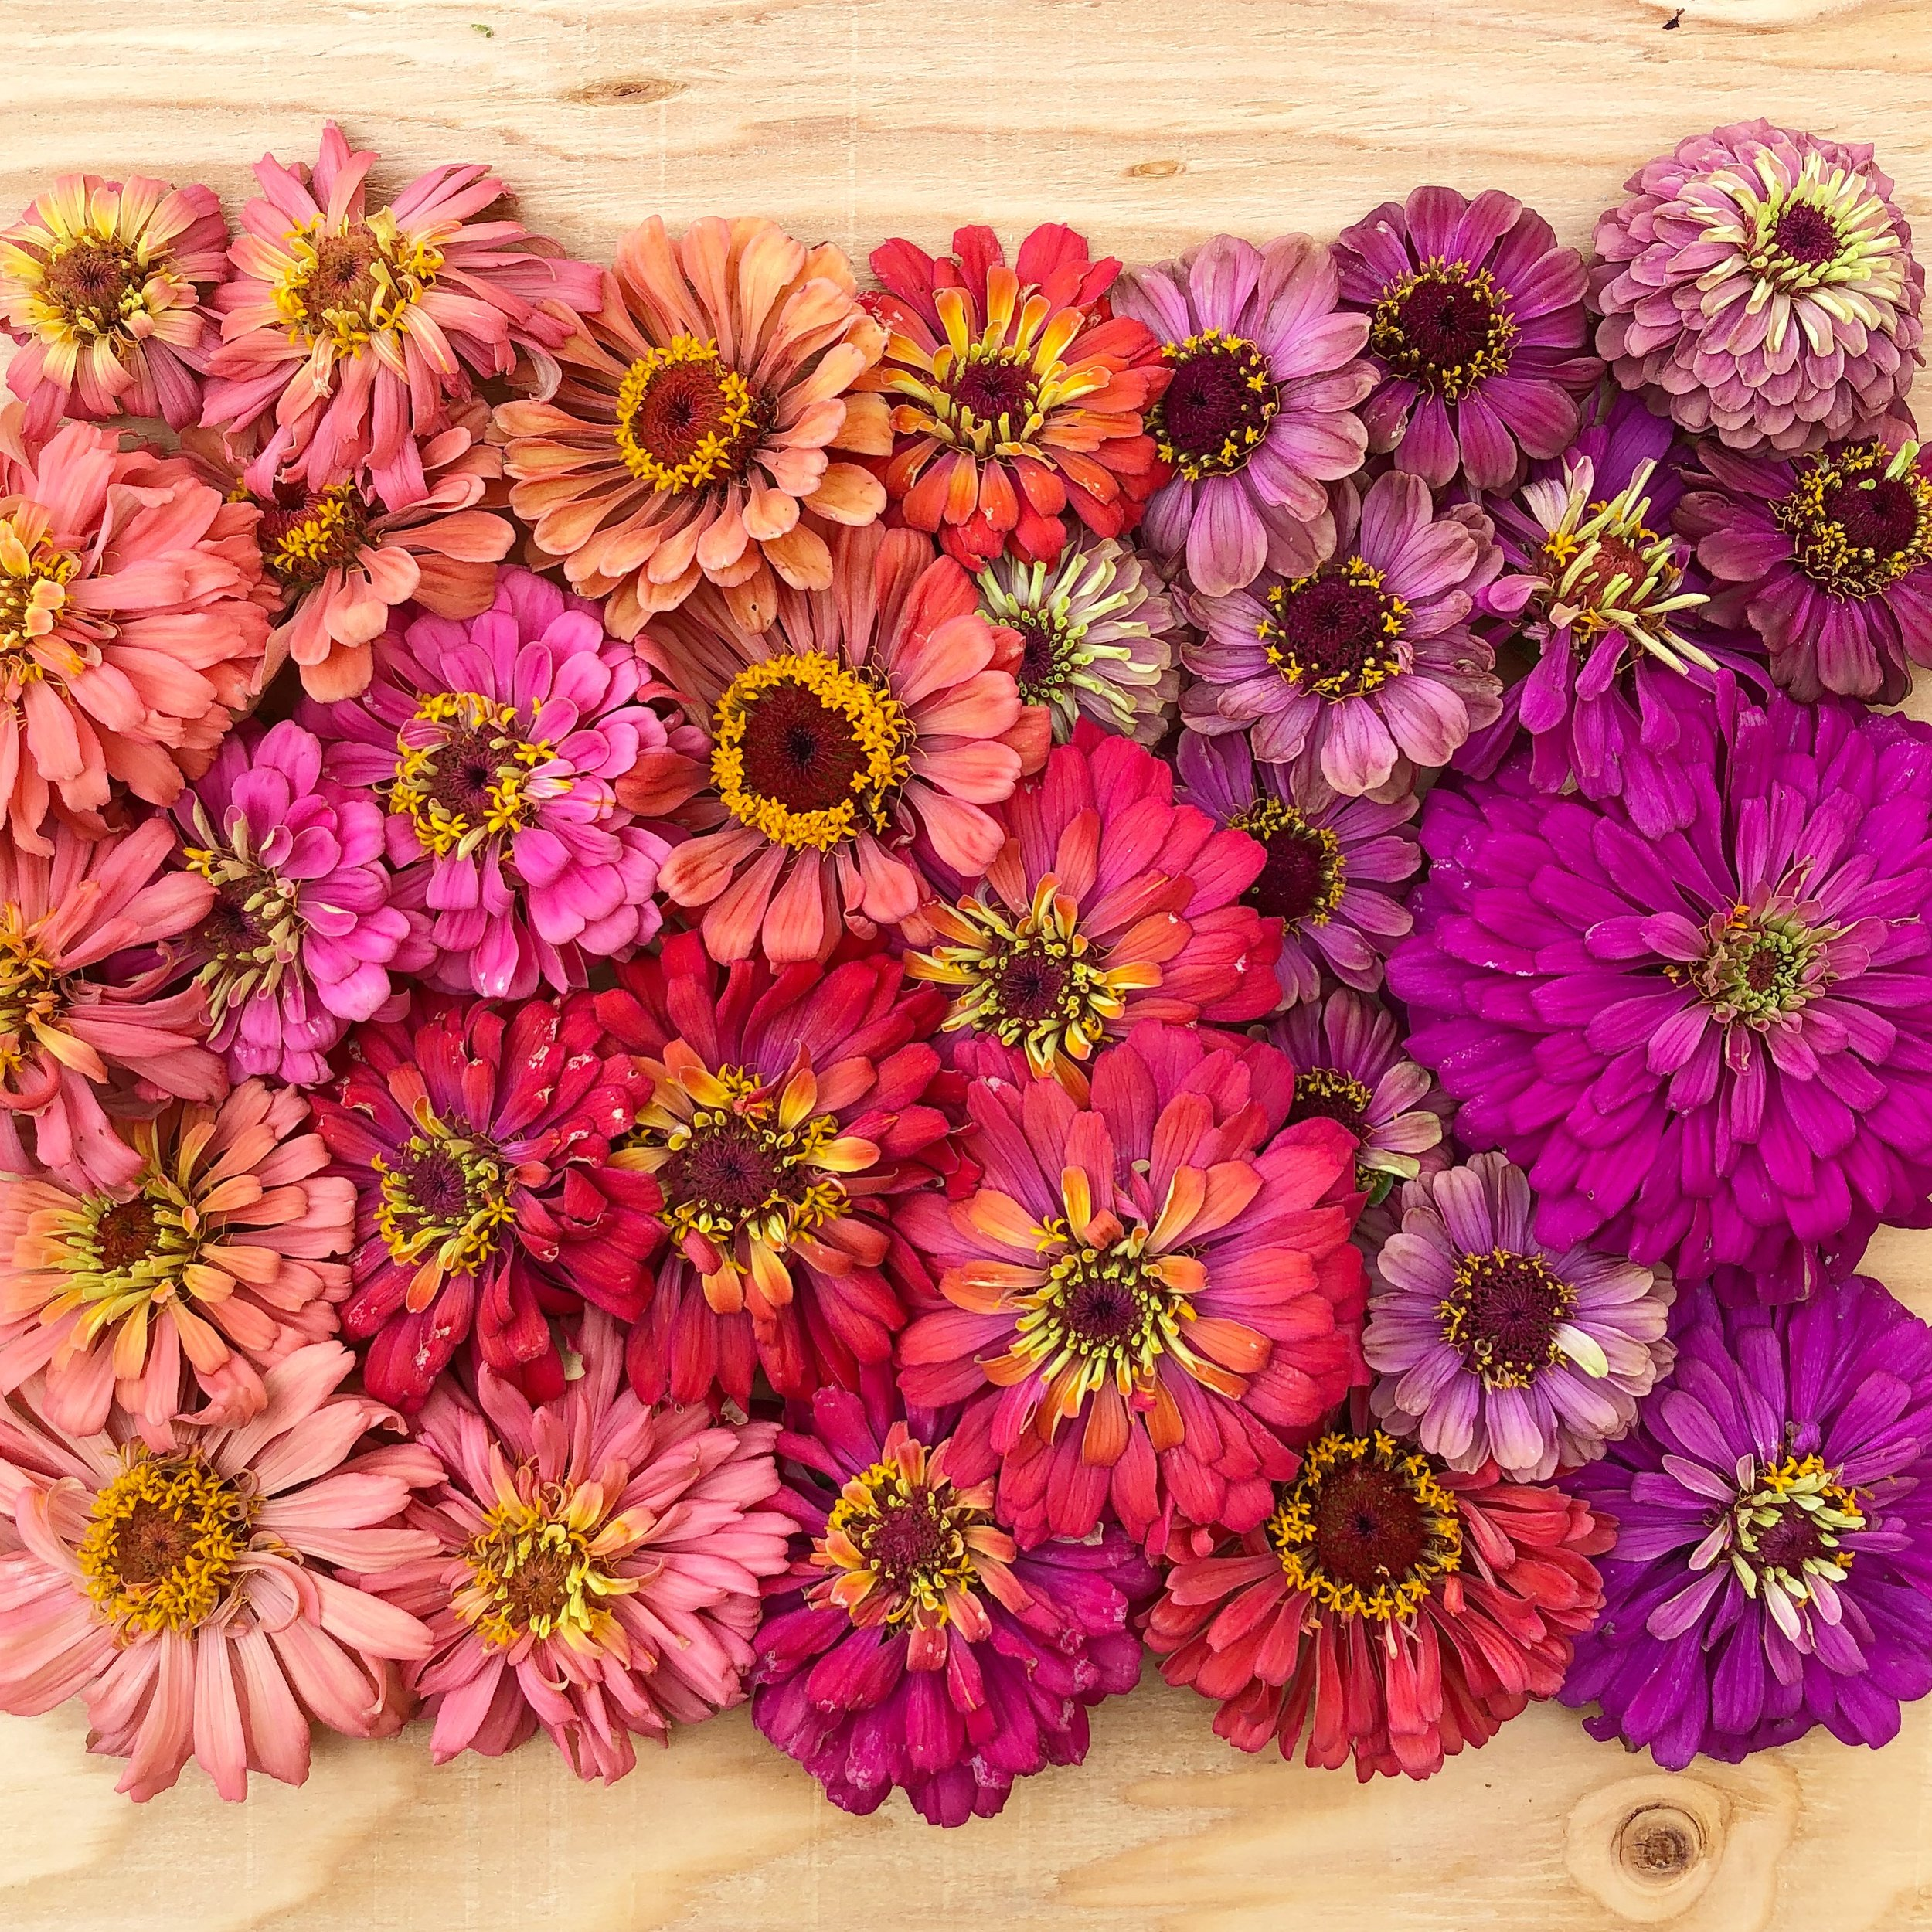 Meet the Flowers - At Petal Pink Flower Farm we are committed to growing unique and beautiful flowers without harming the soil or the creatures that live here. We use organic practices and never put chemicals on anything. Our children run through these fields, and we breathe in the dirt while cultivating the soil. We eat honey made by the bees pollinating our blooms. Our customers handle the stems and bury their noses in their petals. You never have to worry about our flowers containing yucky ingredients - we promise.